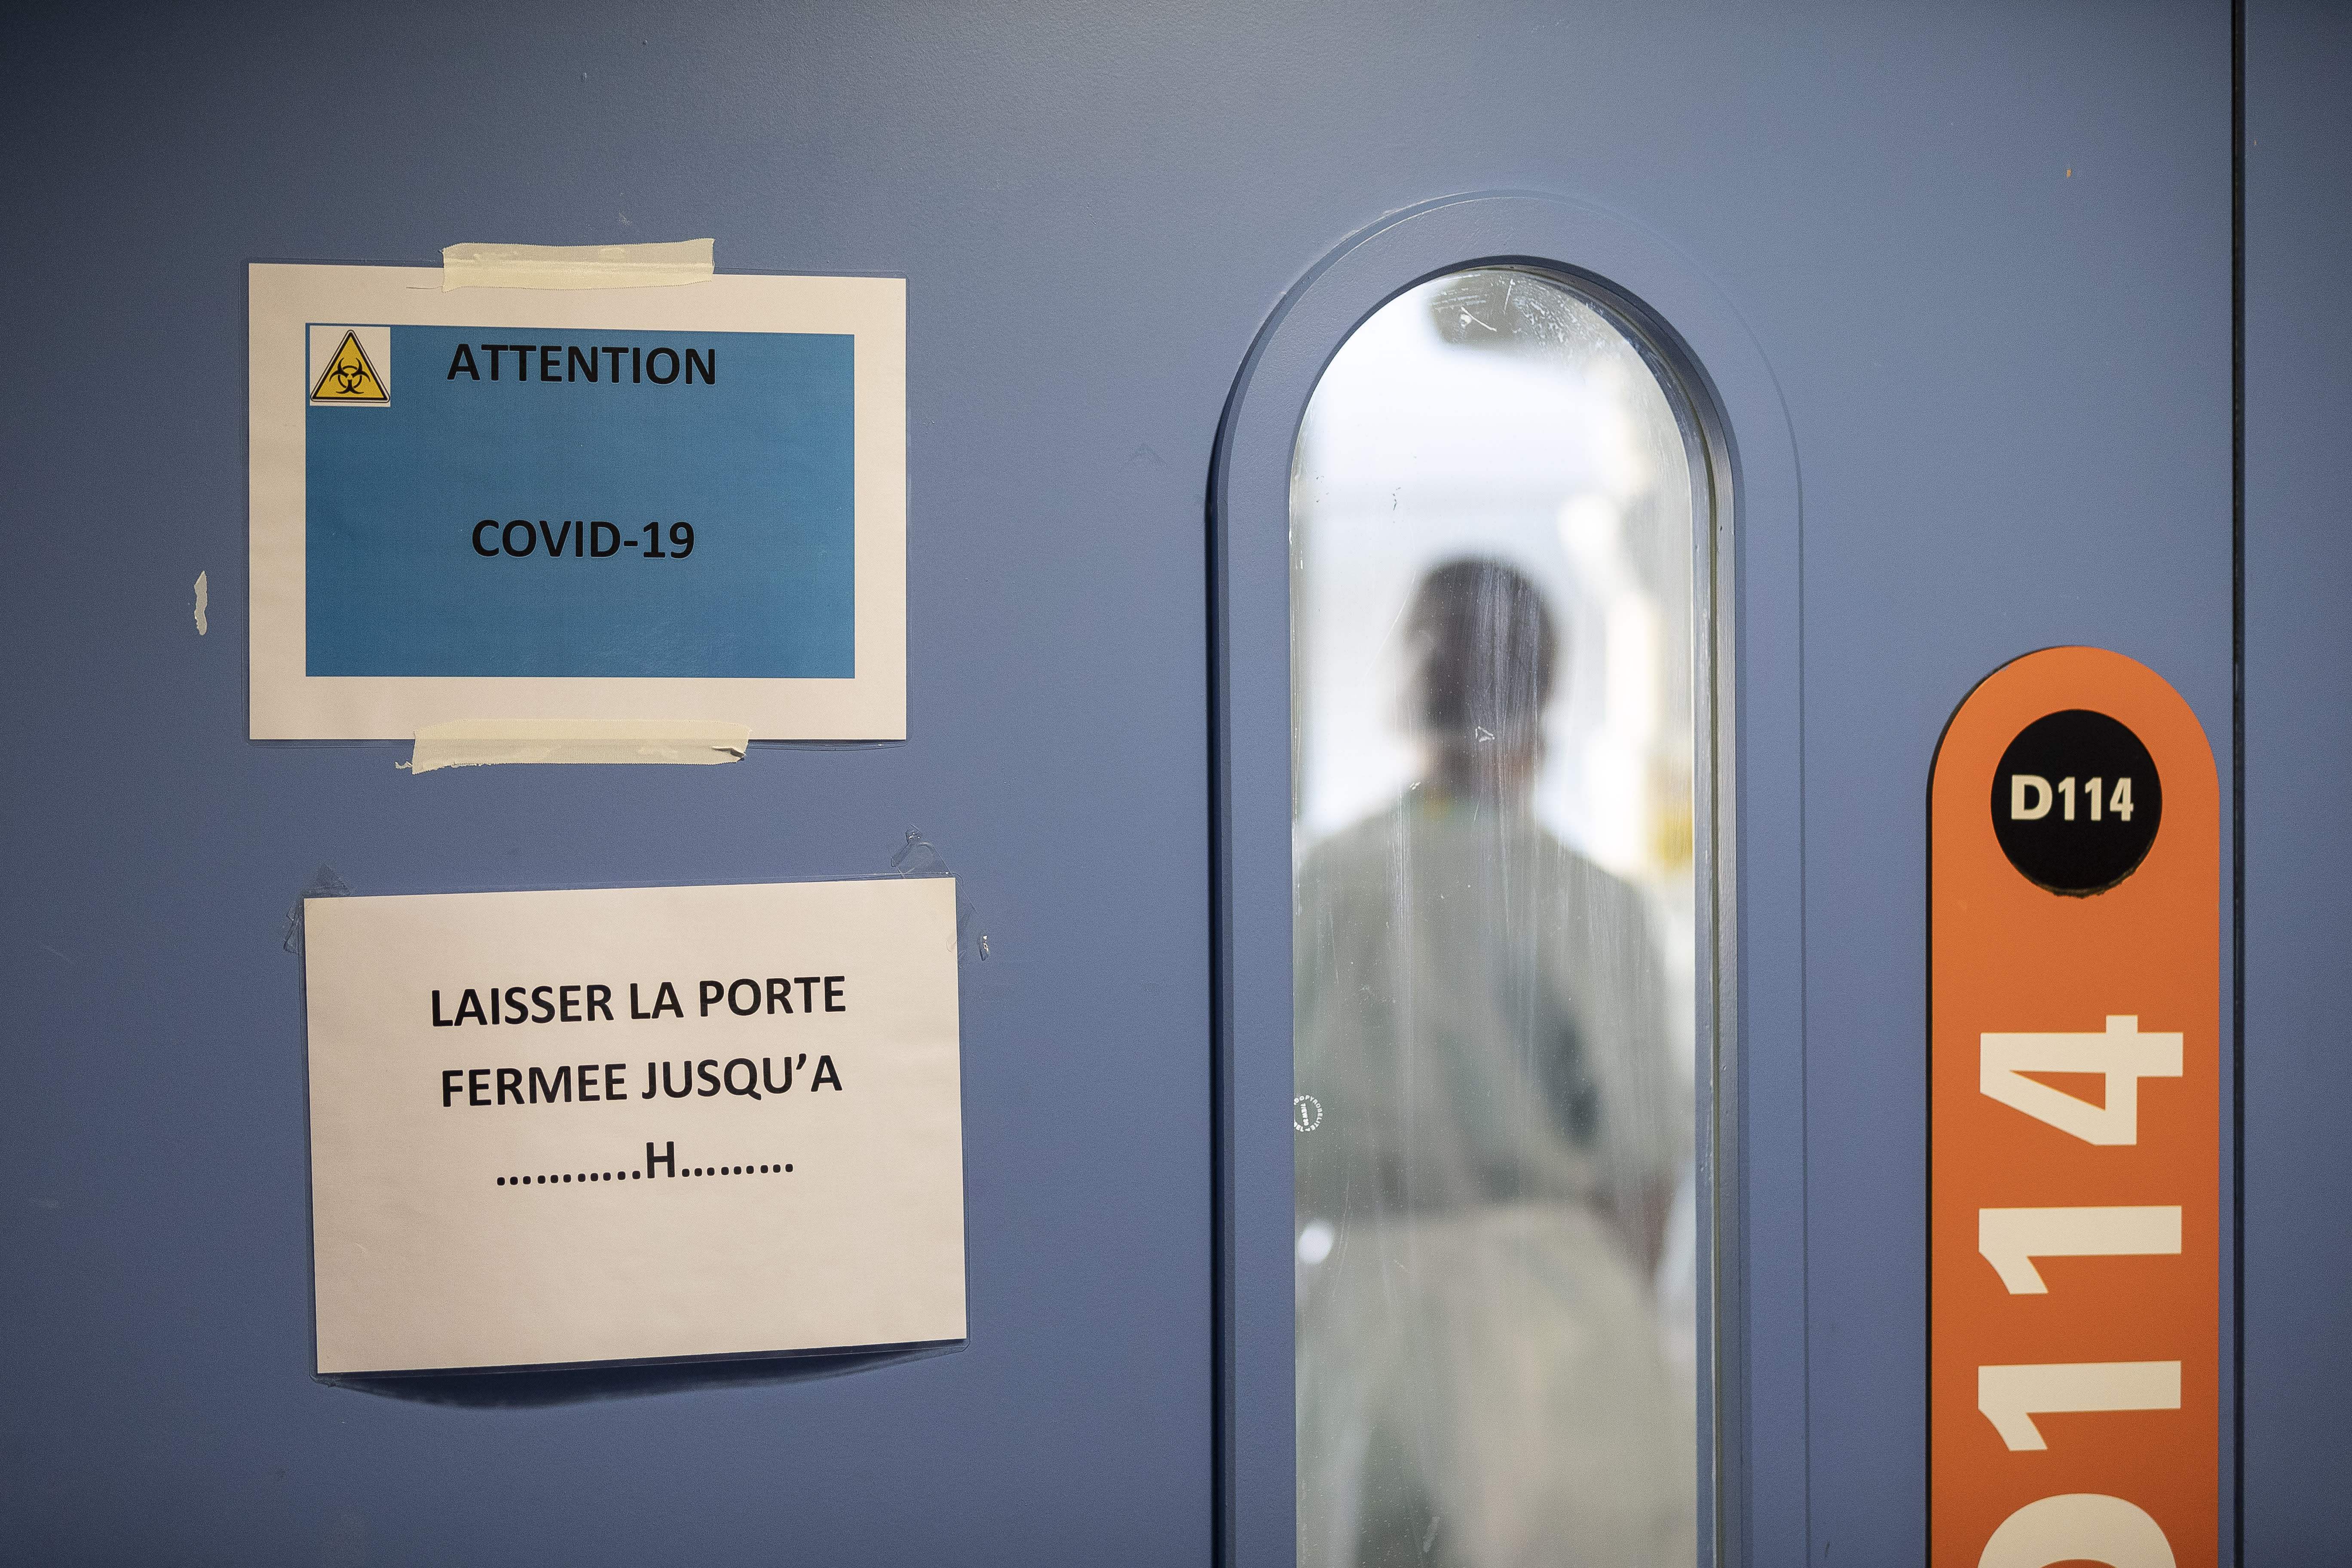 A nurse is seen in a COVID-19 area of the Nouvel Hospital Civil of Strasbourg, Eastern France, Tuesday, Sept.15, 2020. France is grappling with the double headache of trying revive its COVID-battered economy while also curbing the steady climb in infections spread during summer months when vacationers let their guard down and picked up by increased testing. (AP Photo/Jean-Francois Badias)